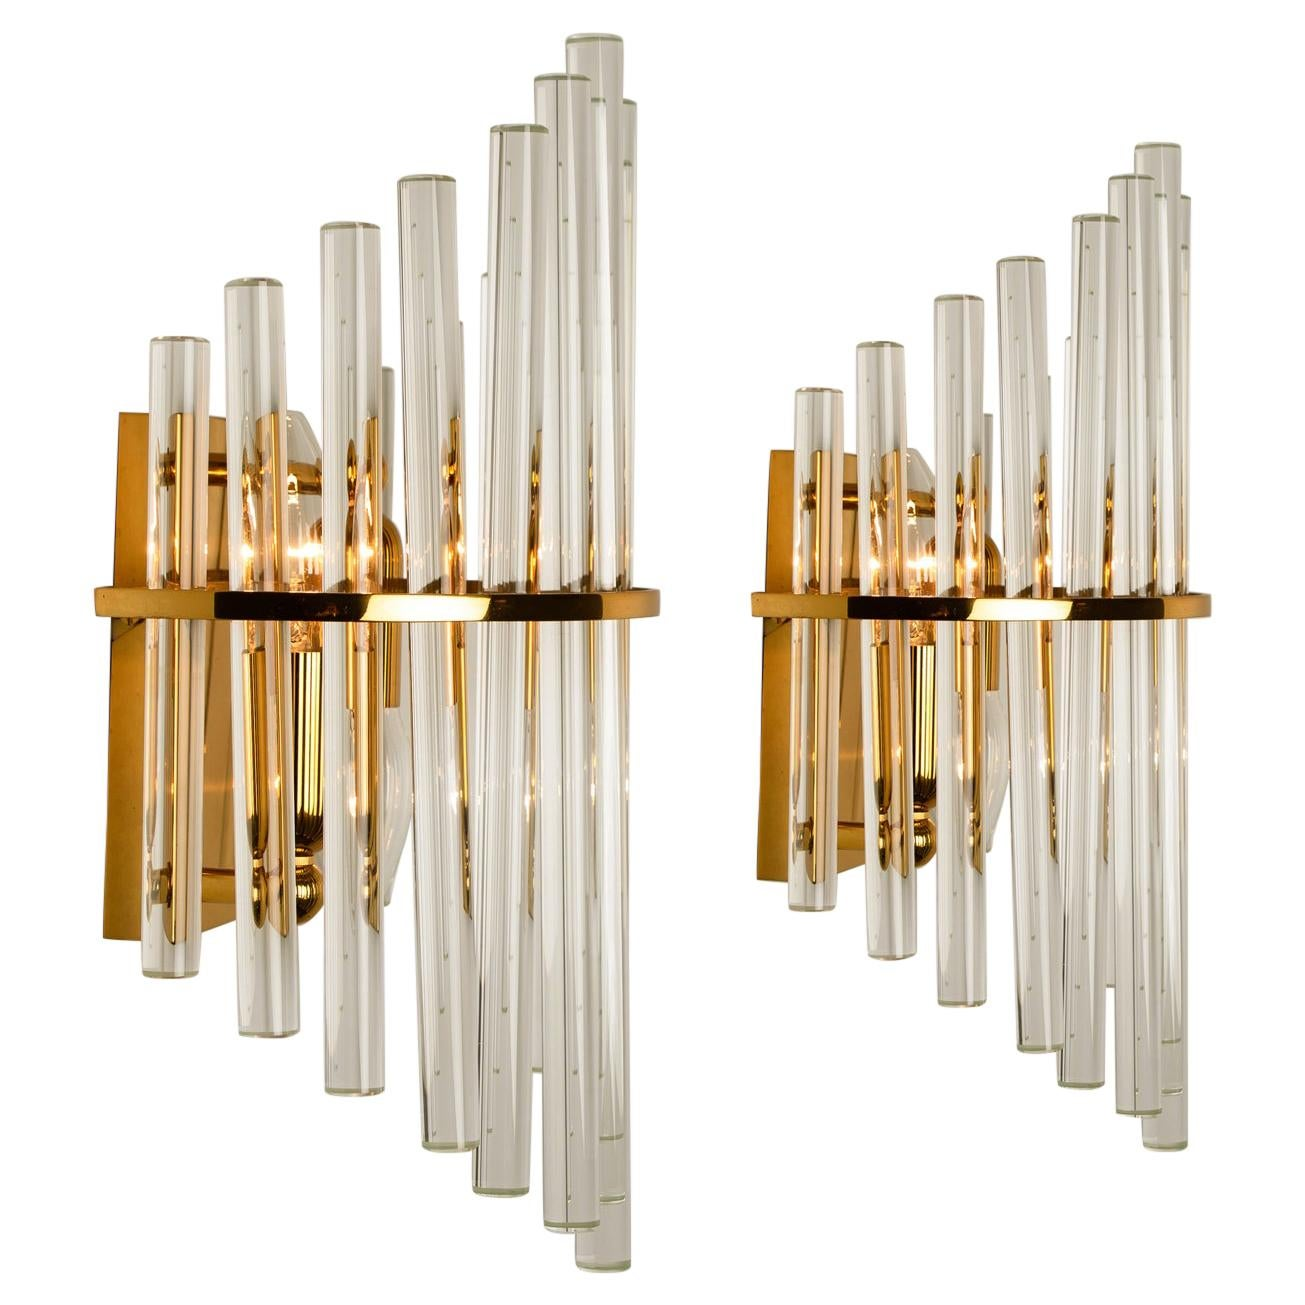 One of the Six Modern Glass Rod Wall Sconces of Sciolari for Lightolier